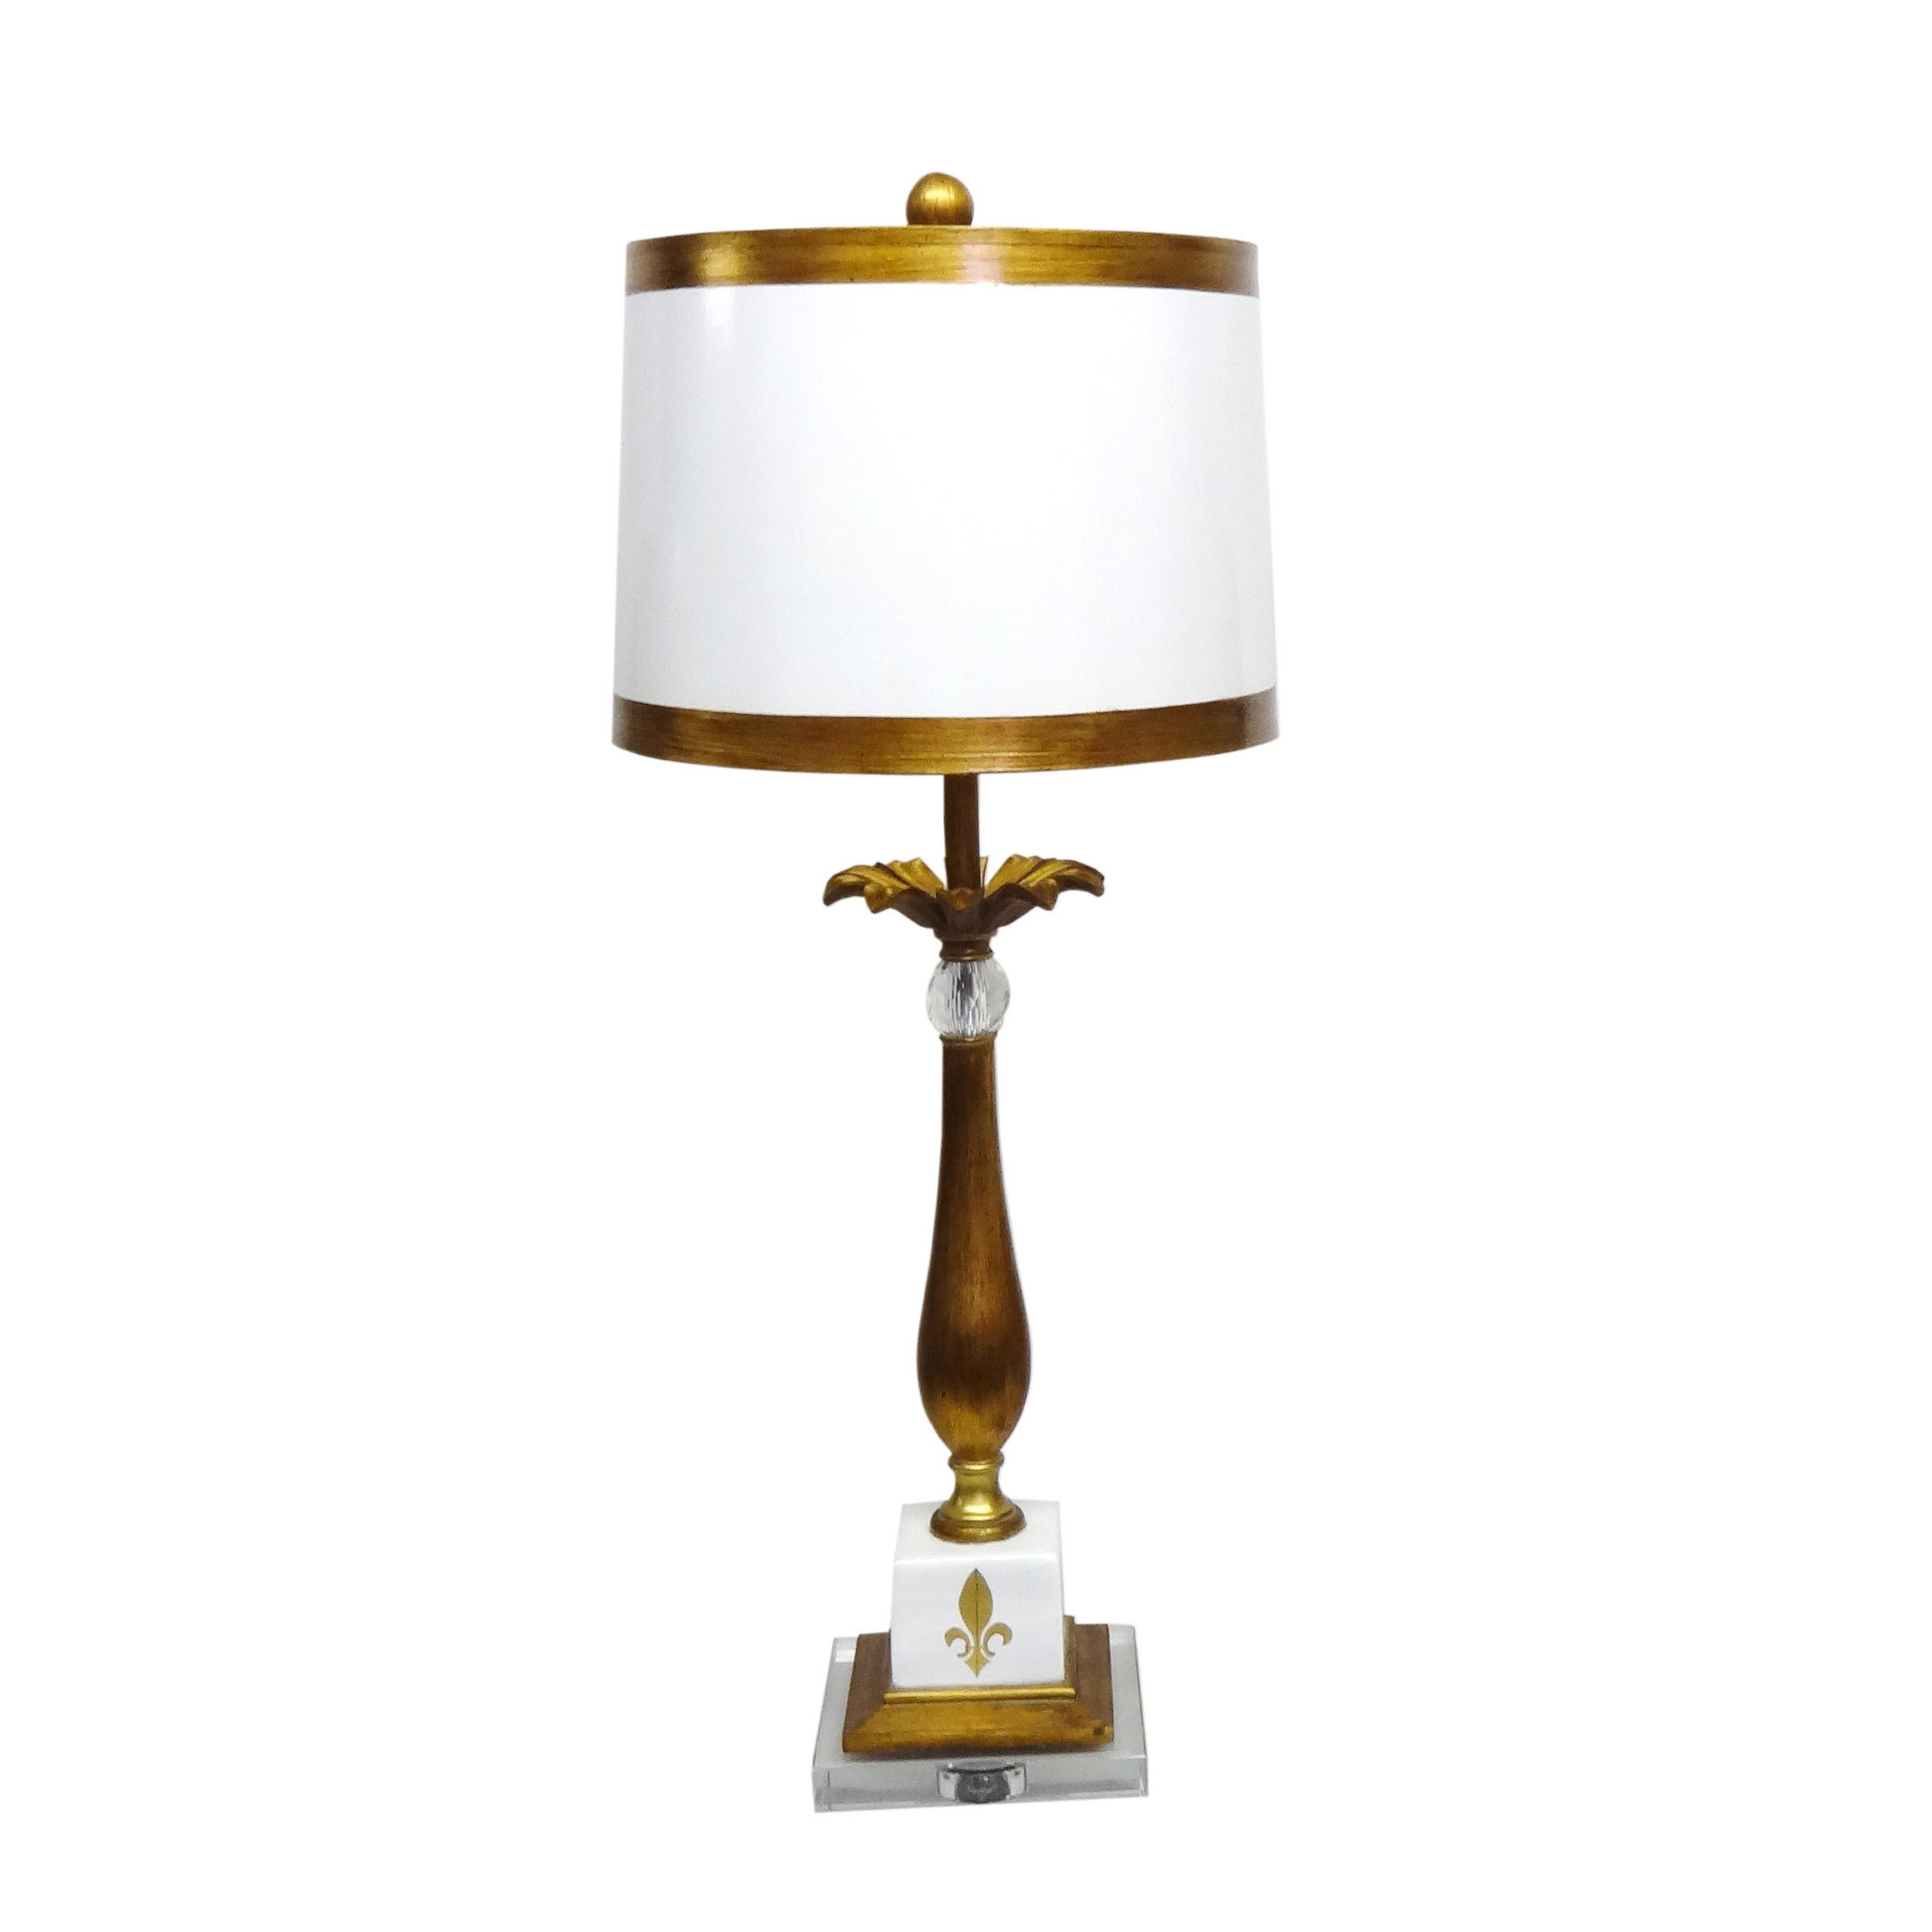 White fleur de lis 1 light gold table lamp ebay white fleur de lis 1 light gold table lamp aloadofball Choice Image